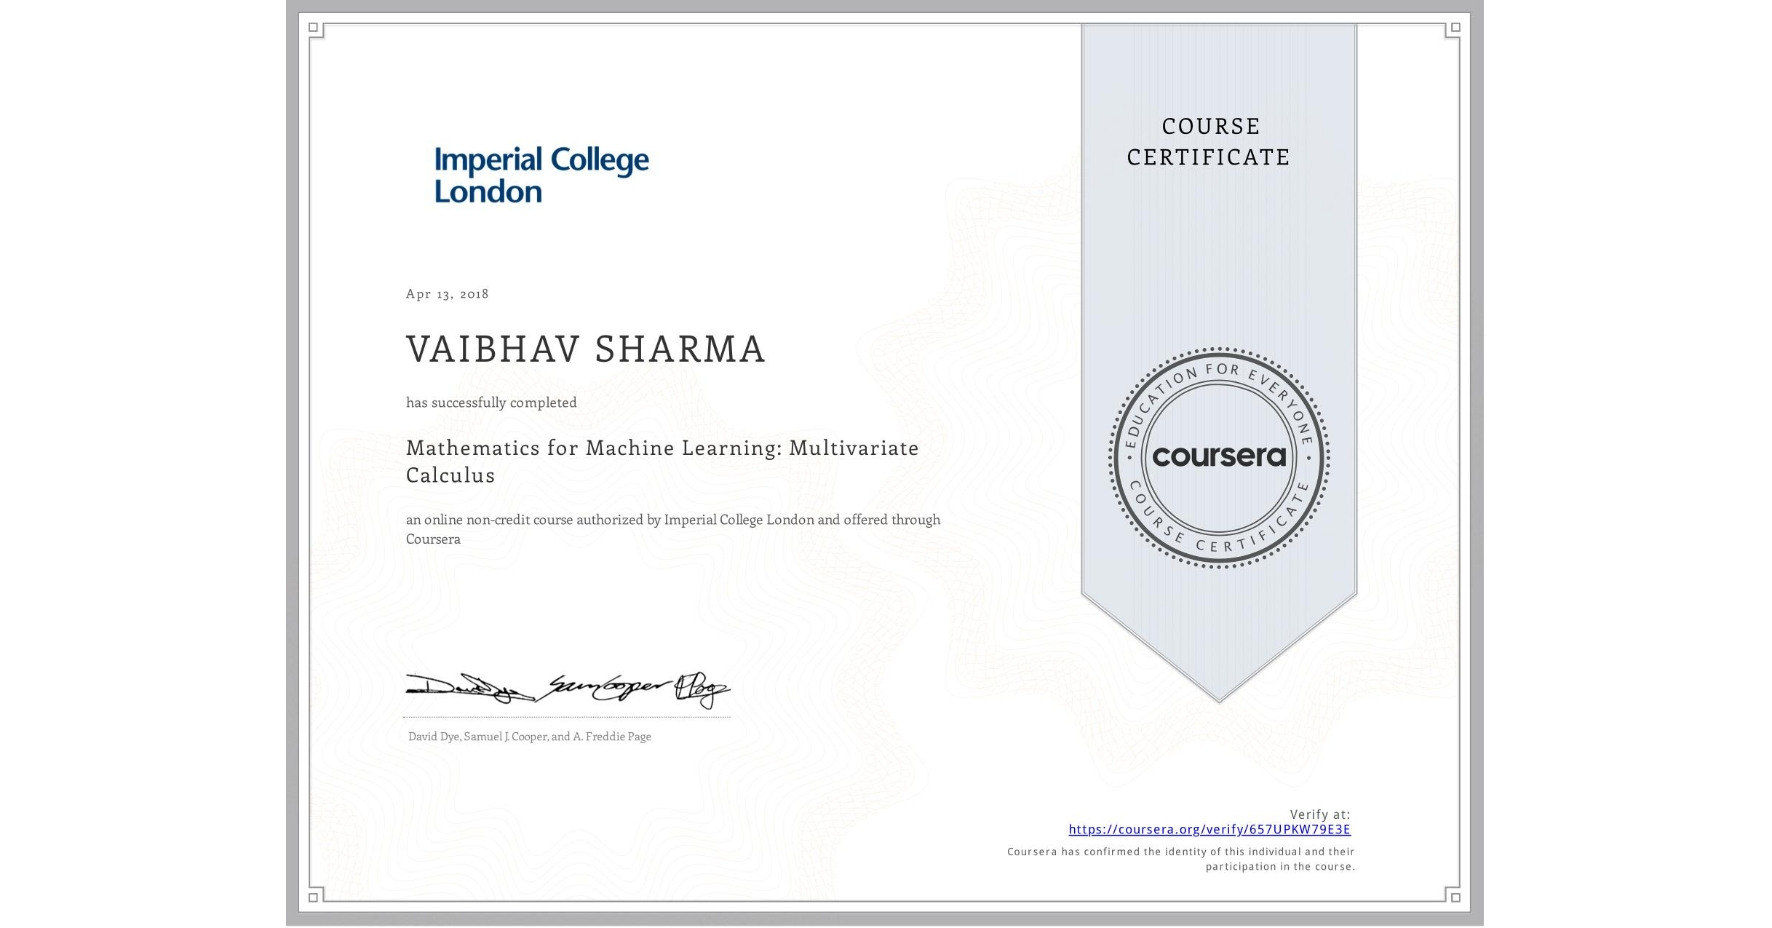 View certificate for VAIBHAV SHARMA, Mathematics for Machine Learning: Multivariate Calculus, an online non-credit course authorized by Imperial College London and offered through Coursera